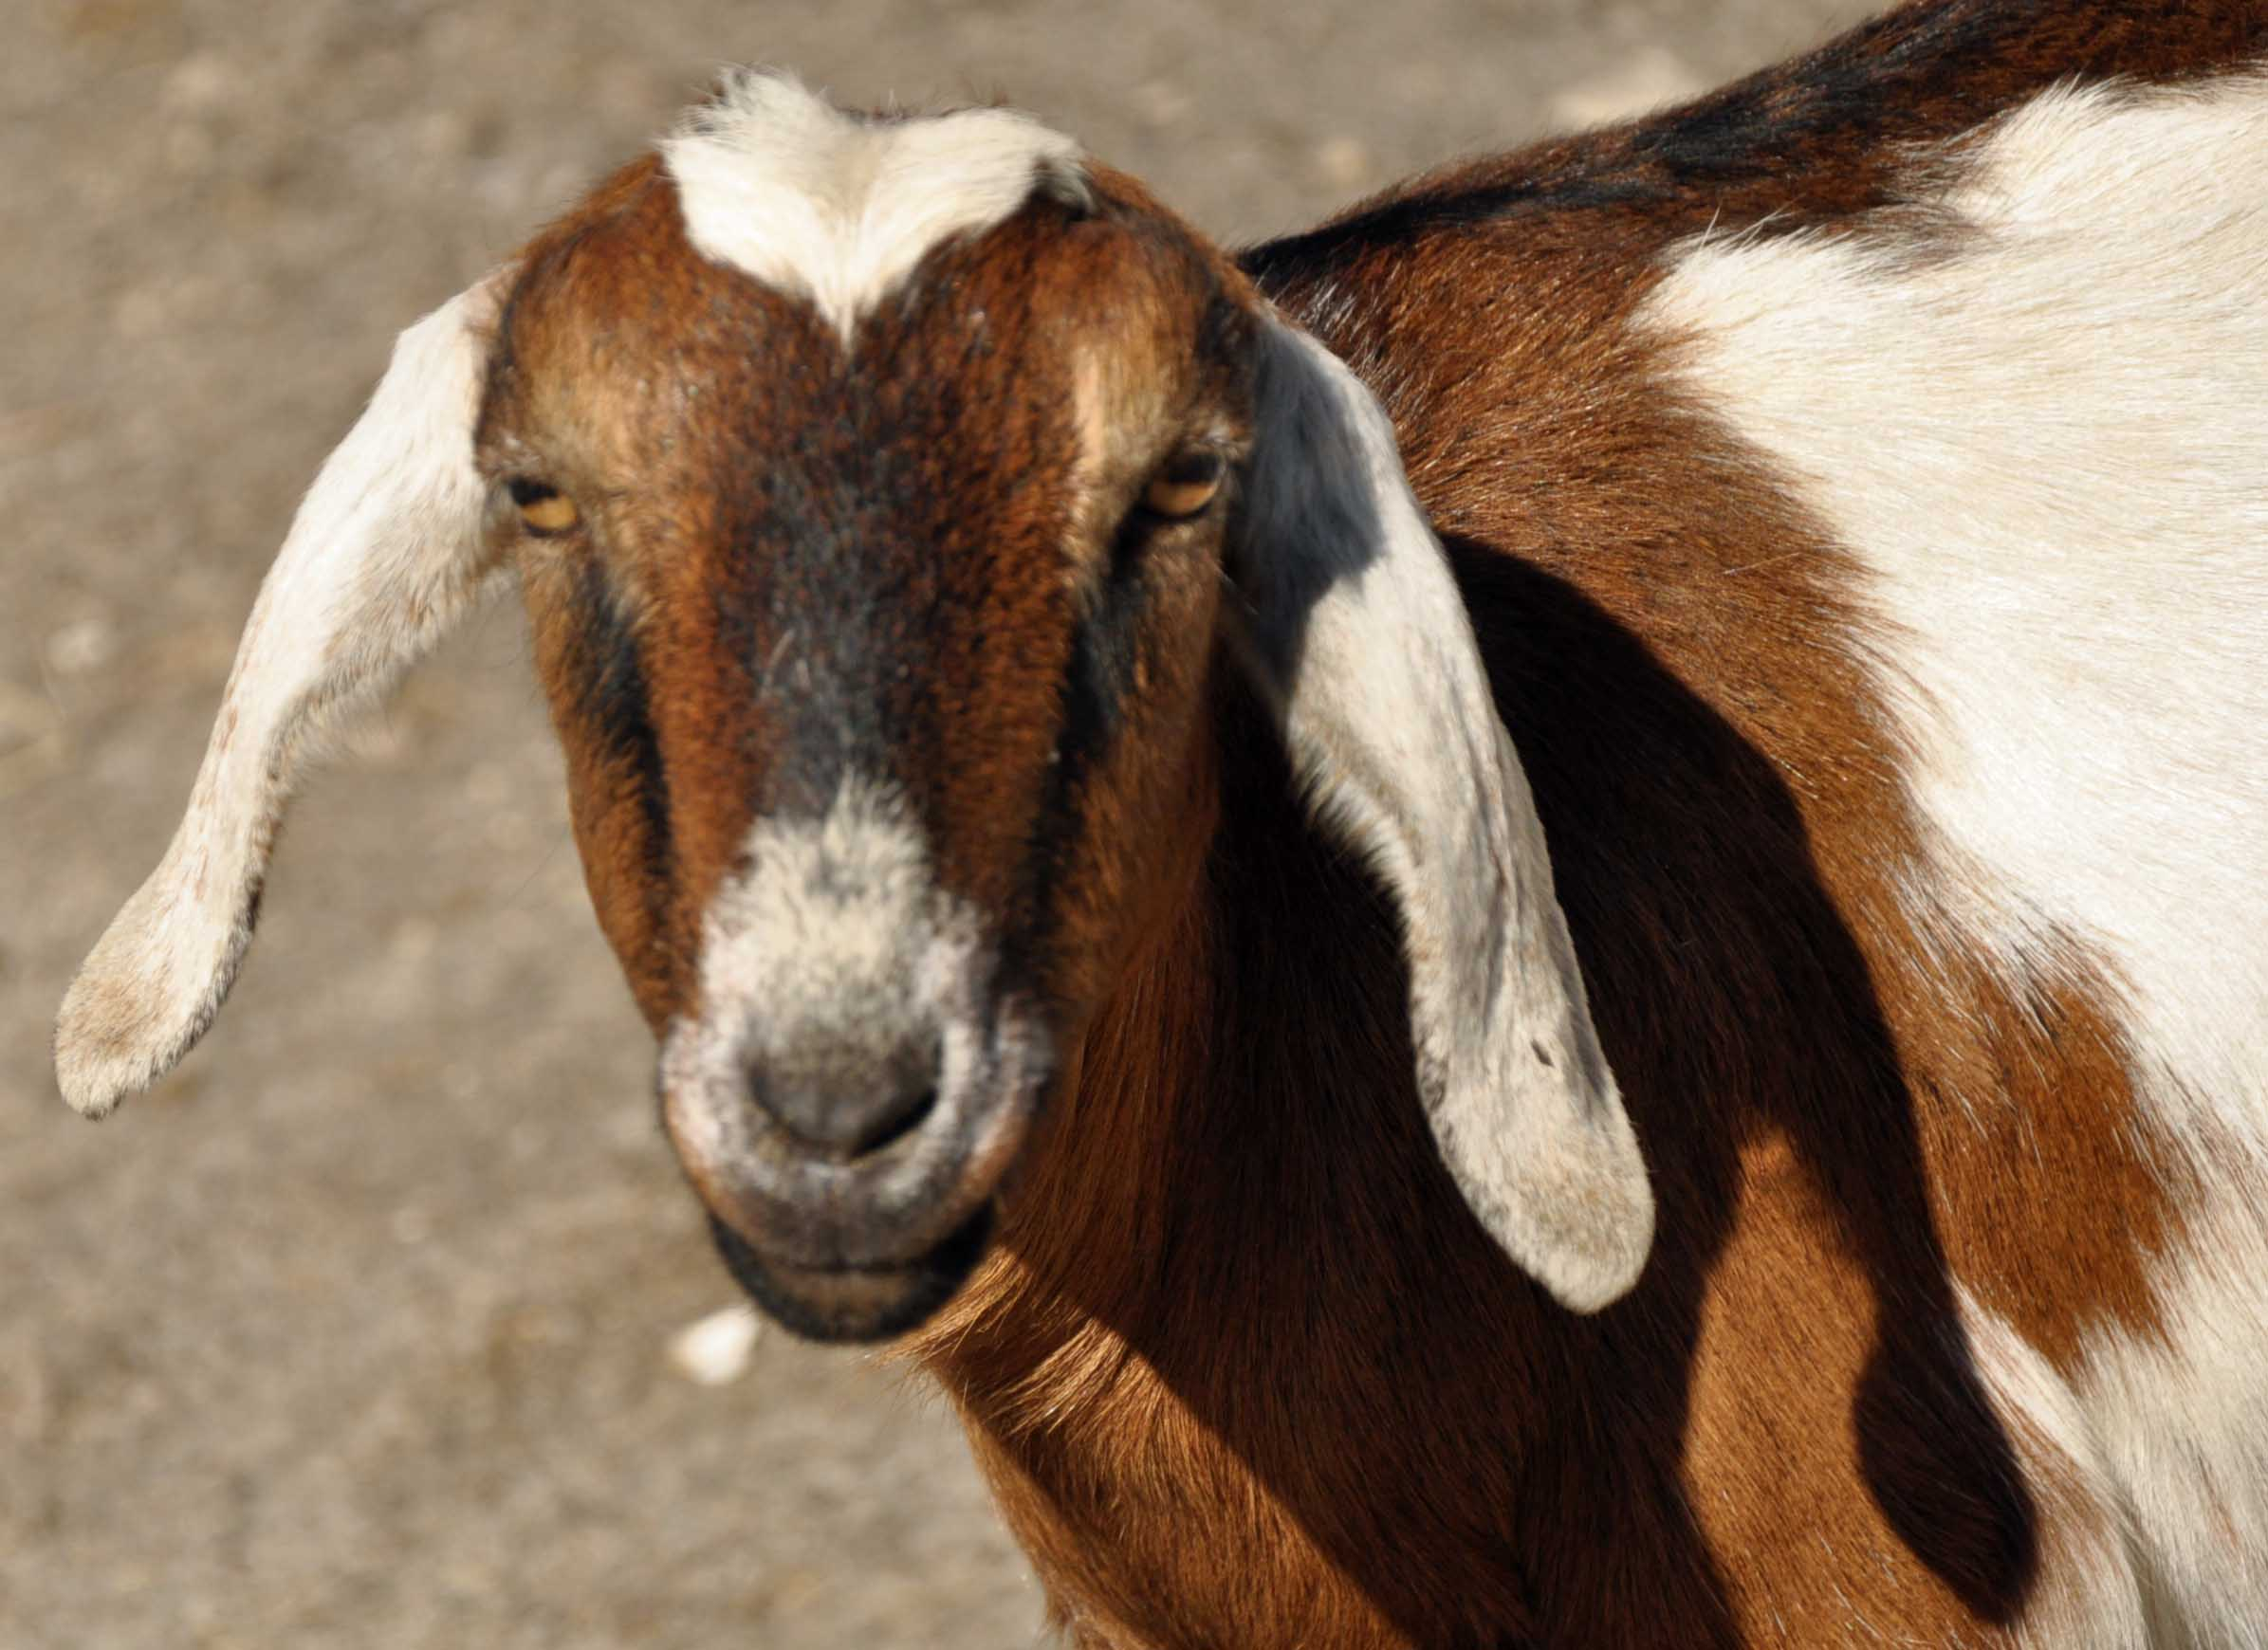 Goat - Long Ears.jpg